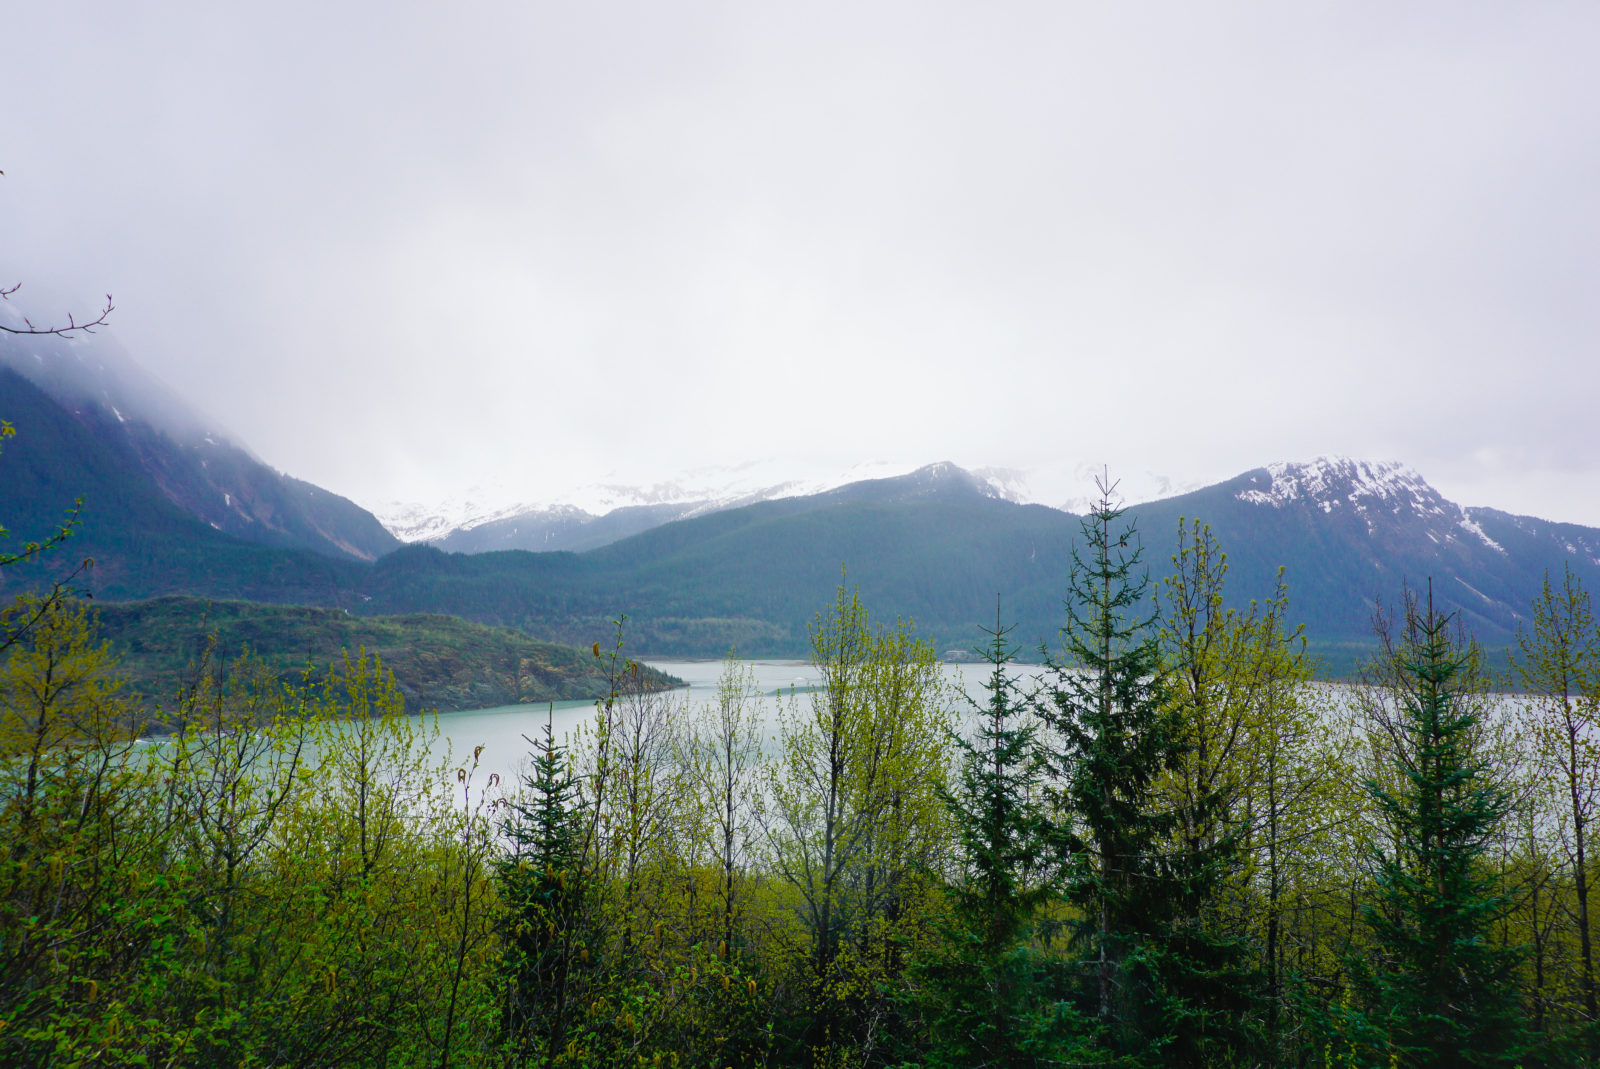 Foggy Mendenhall Lake area